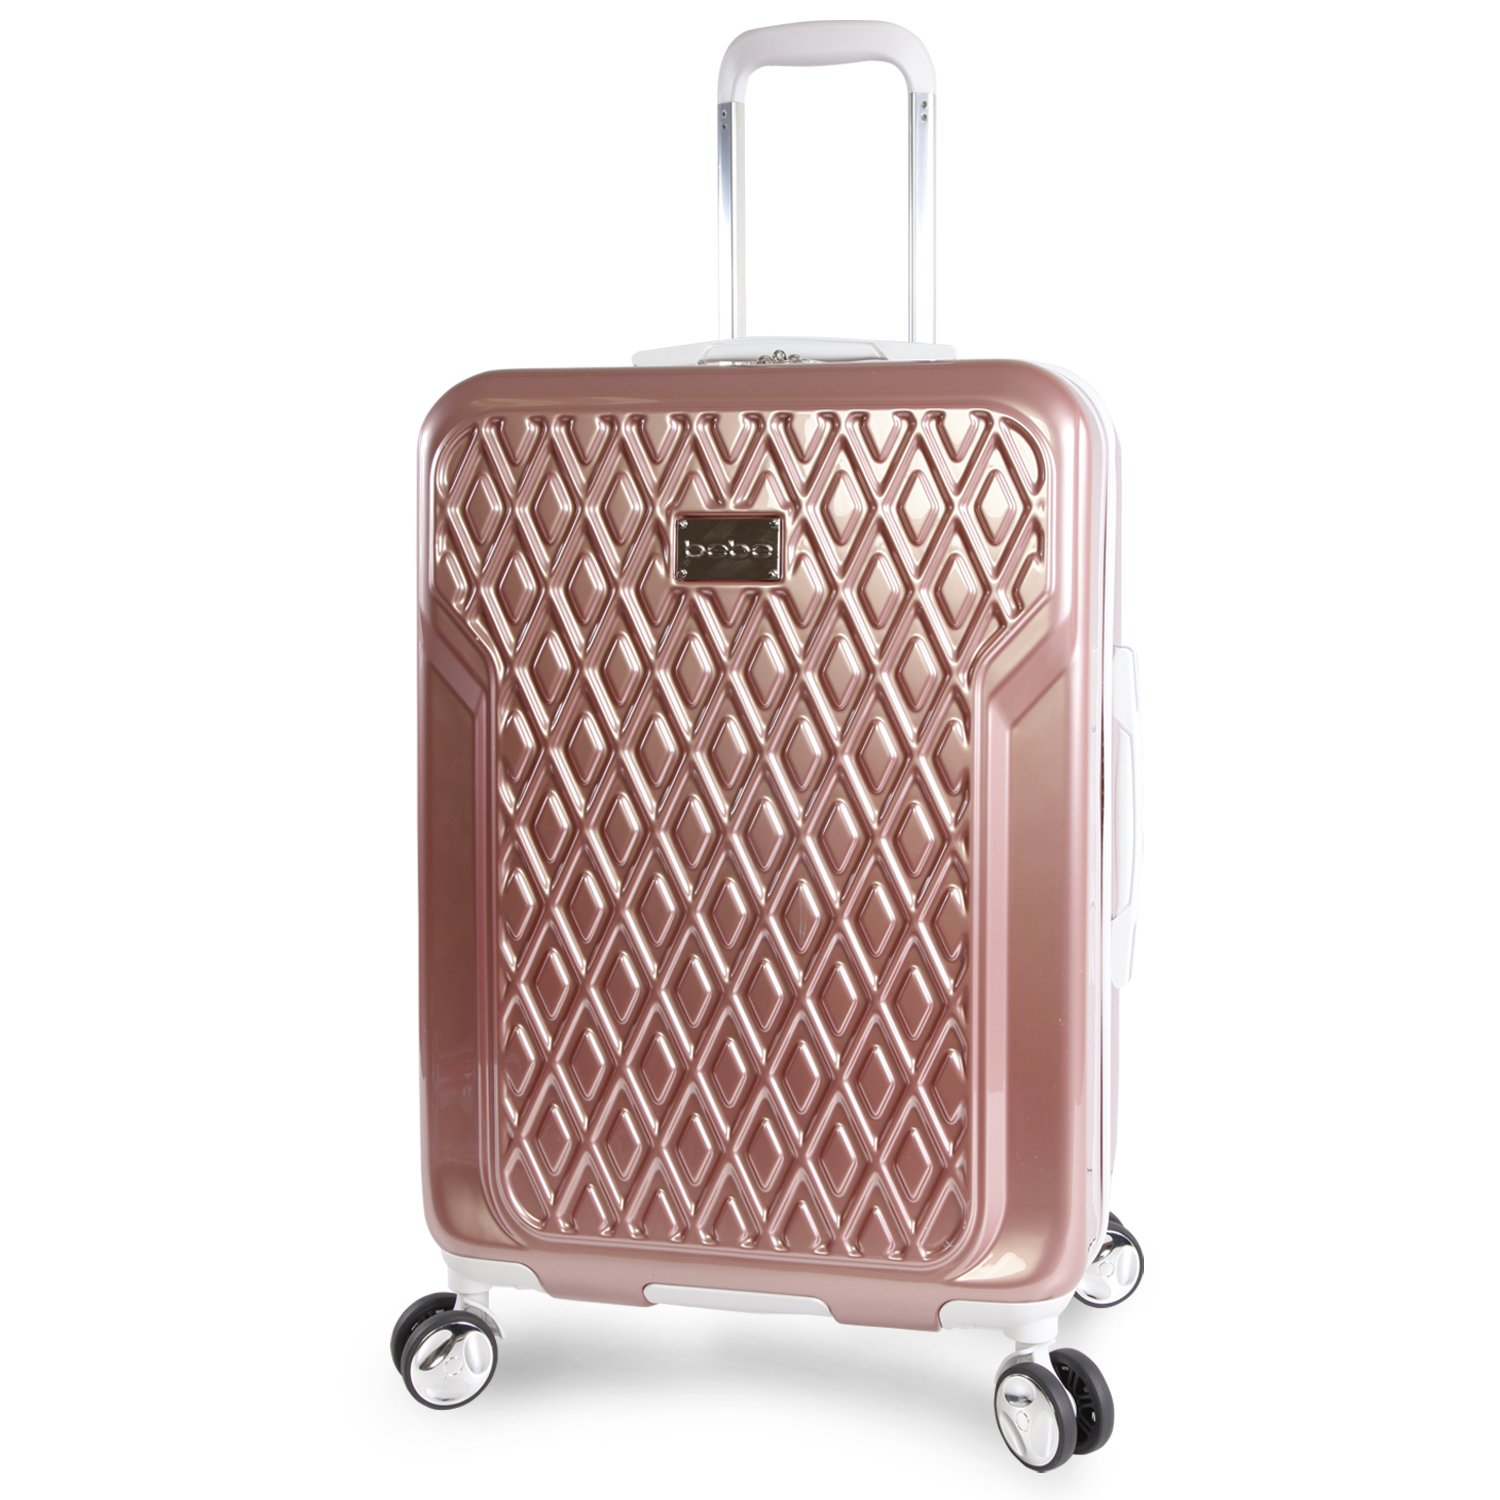 Bebe Women's Stella 21 Hardside Carry-on Spinner Luggage, Rose Gold BeBe Luggage BE-PC-7321